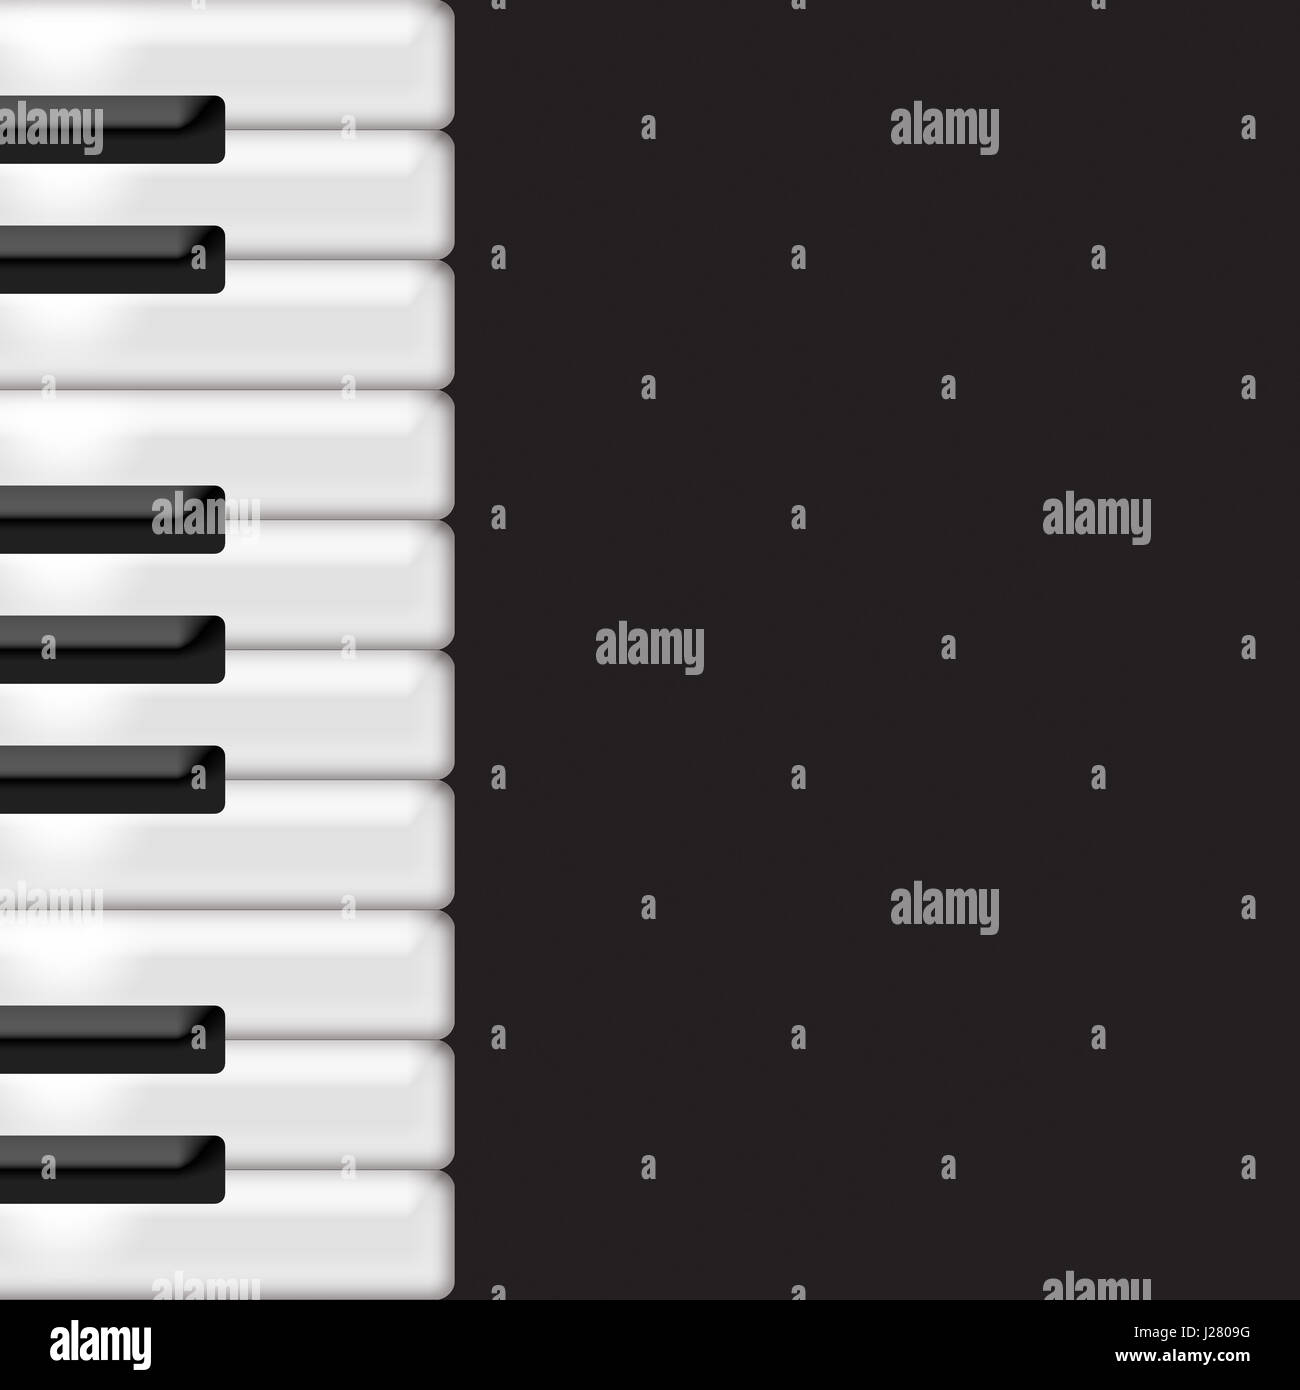 Musical black and white keyboard piano against a dark background. - Stock Image